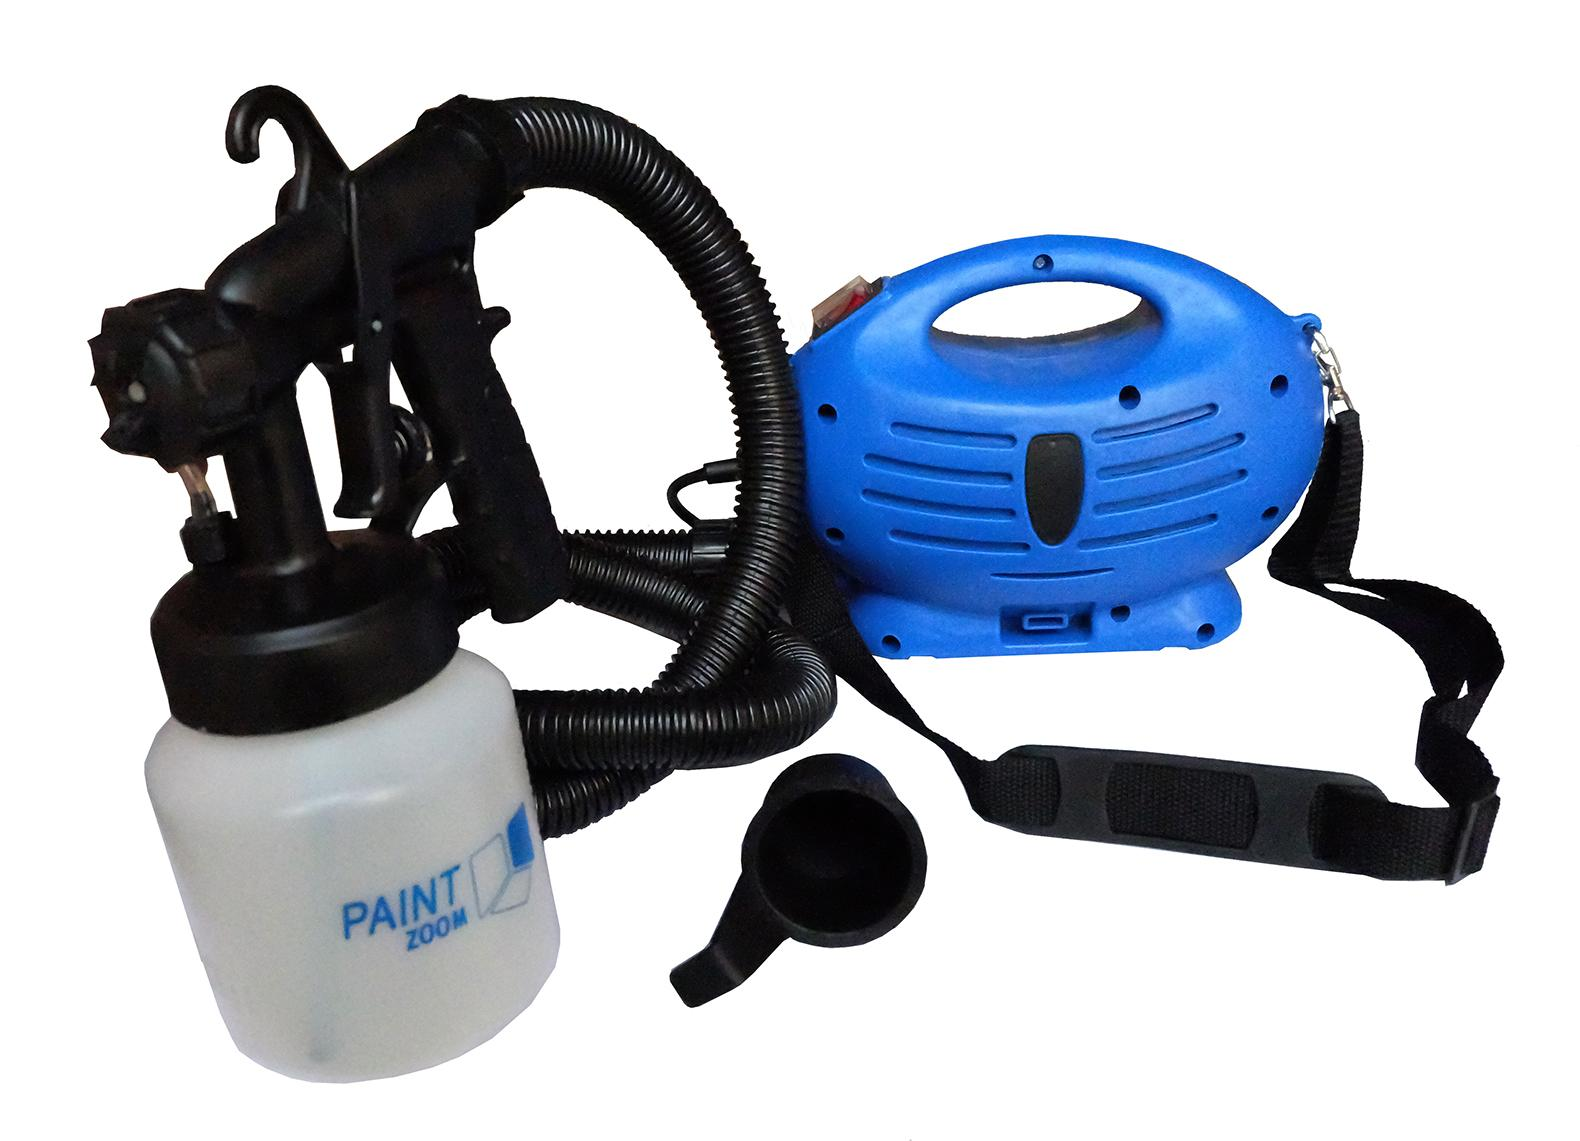 Automatic Electric Paint Sprayer System 650 Watts Paint Zoom By Spiro Spot Global.